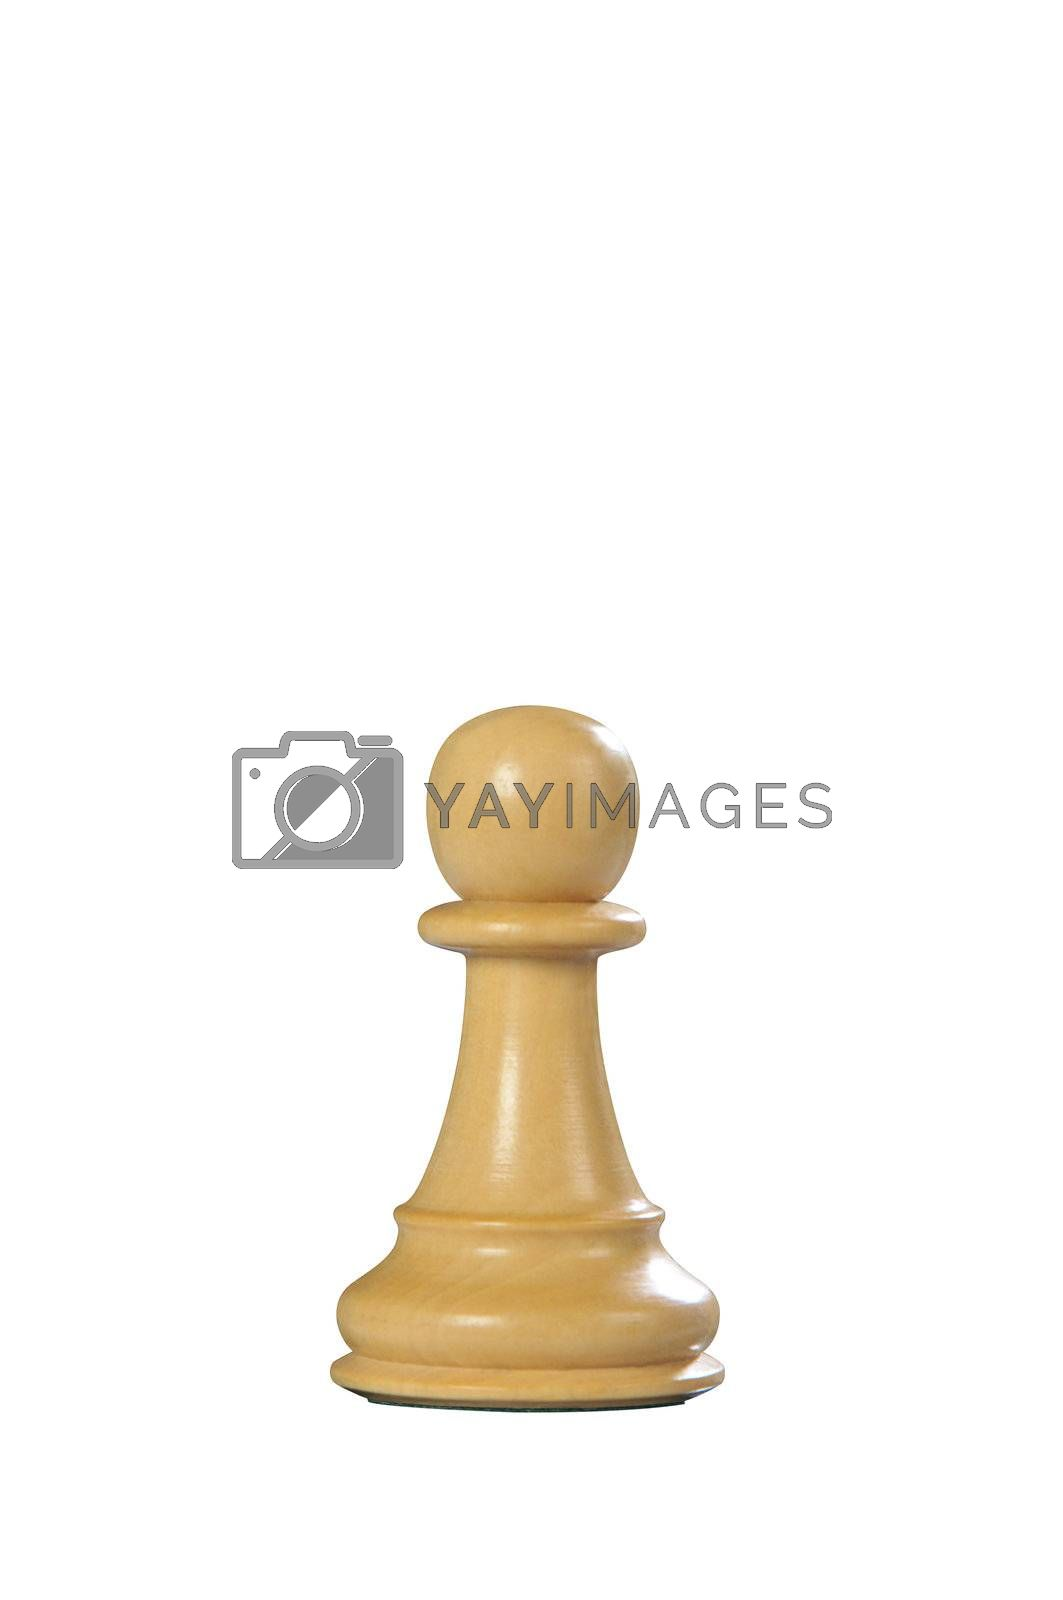 White wooden pawn queen - one of 12 different chess pieces.